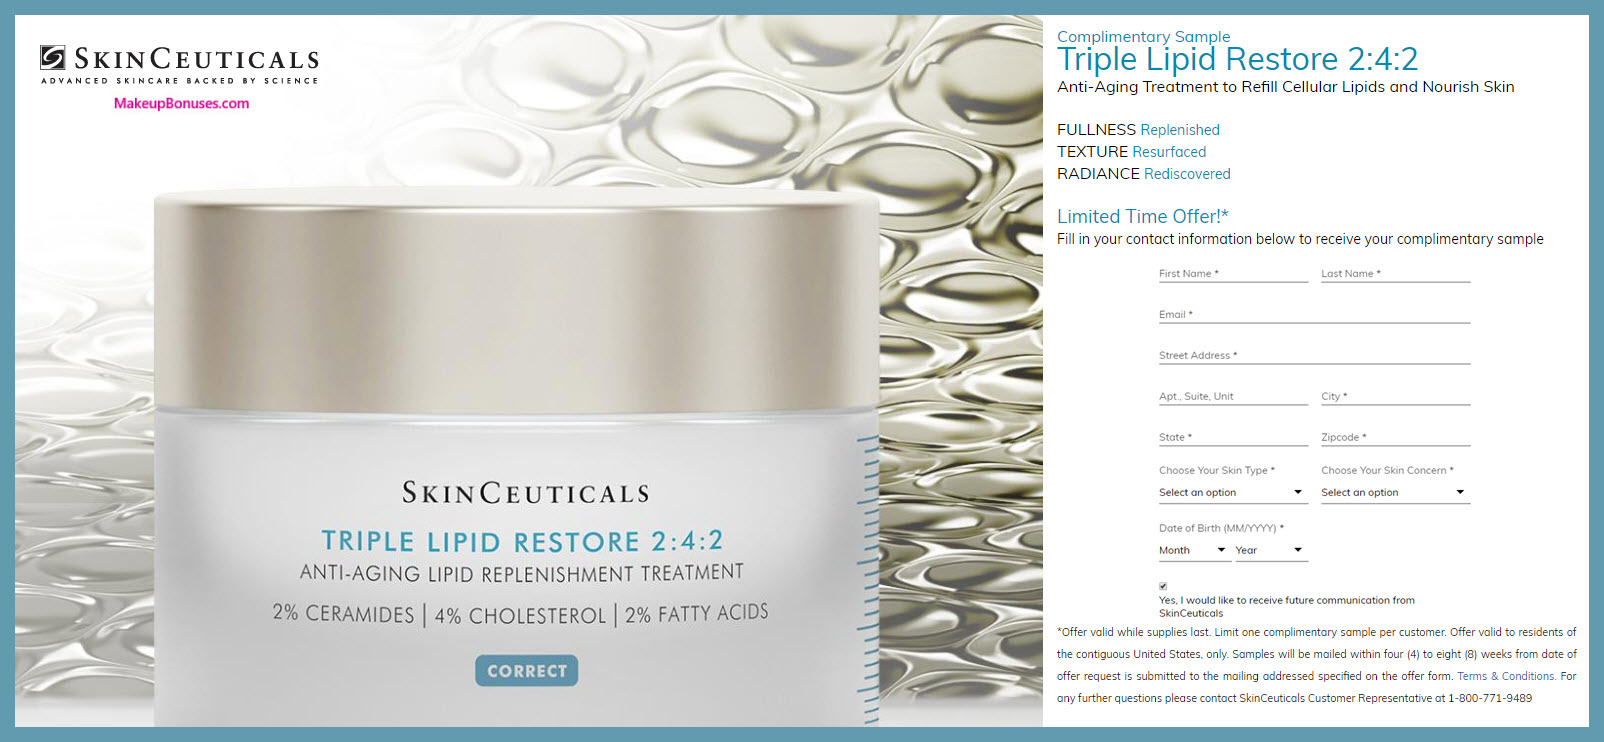 SkinCeuticals FREE sample with No Shipping Costs - MakeupBonuses.com